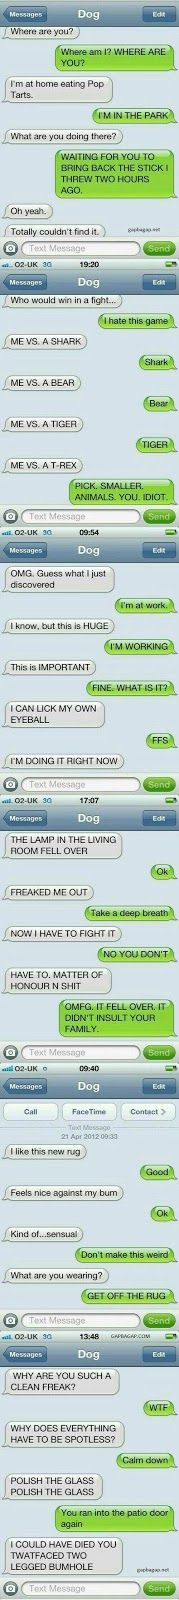 "5+ Funny Text Messages ft. Funny Dogs ""How To Start A Game Or Utility App Business In Less Than A Week... With Zero App Development!"""